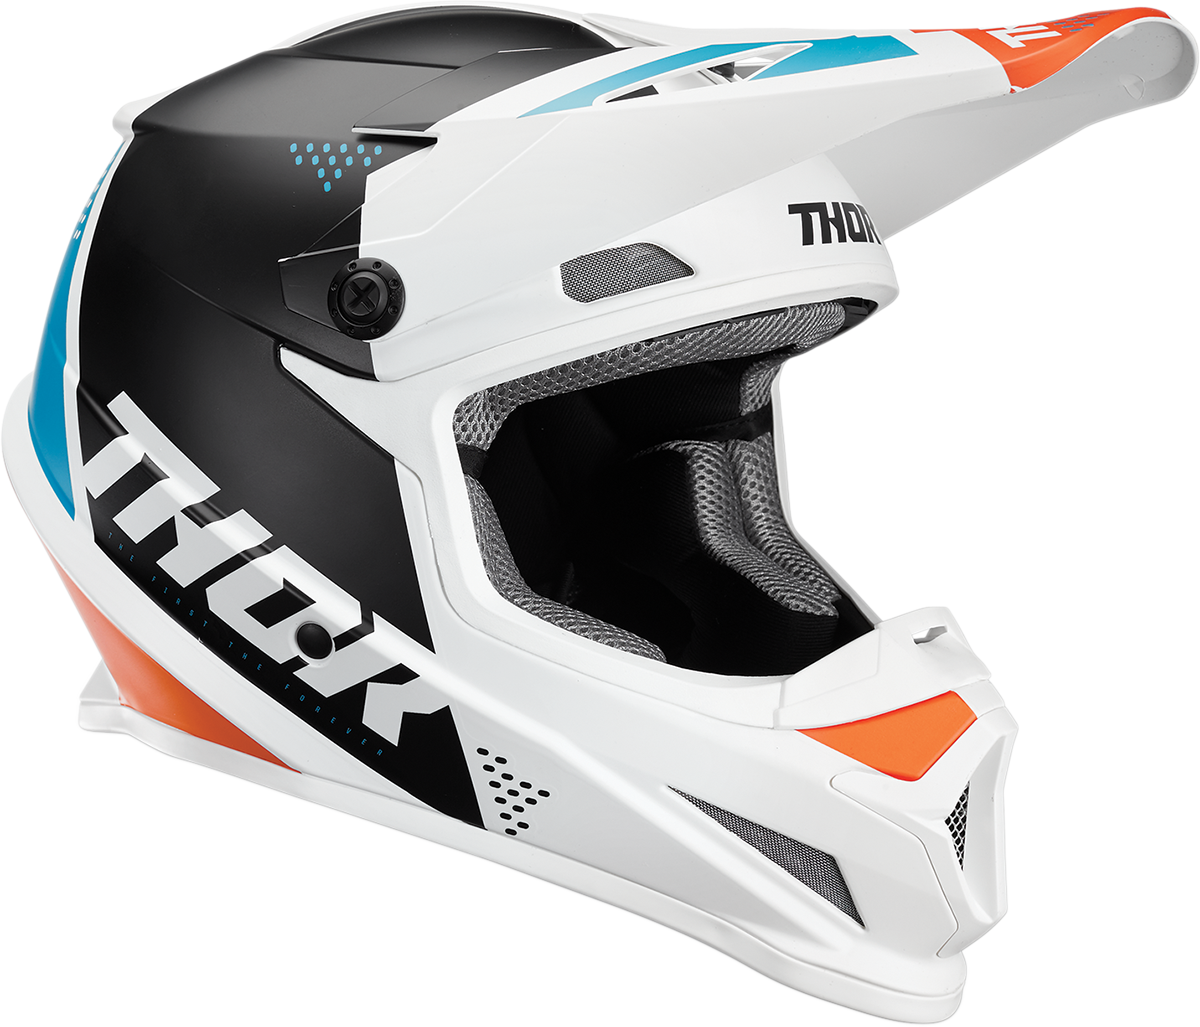 Thor MX Sector Blade Unisex Fullface Offroad Riding Dirt Bike Racing Helmet